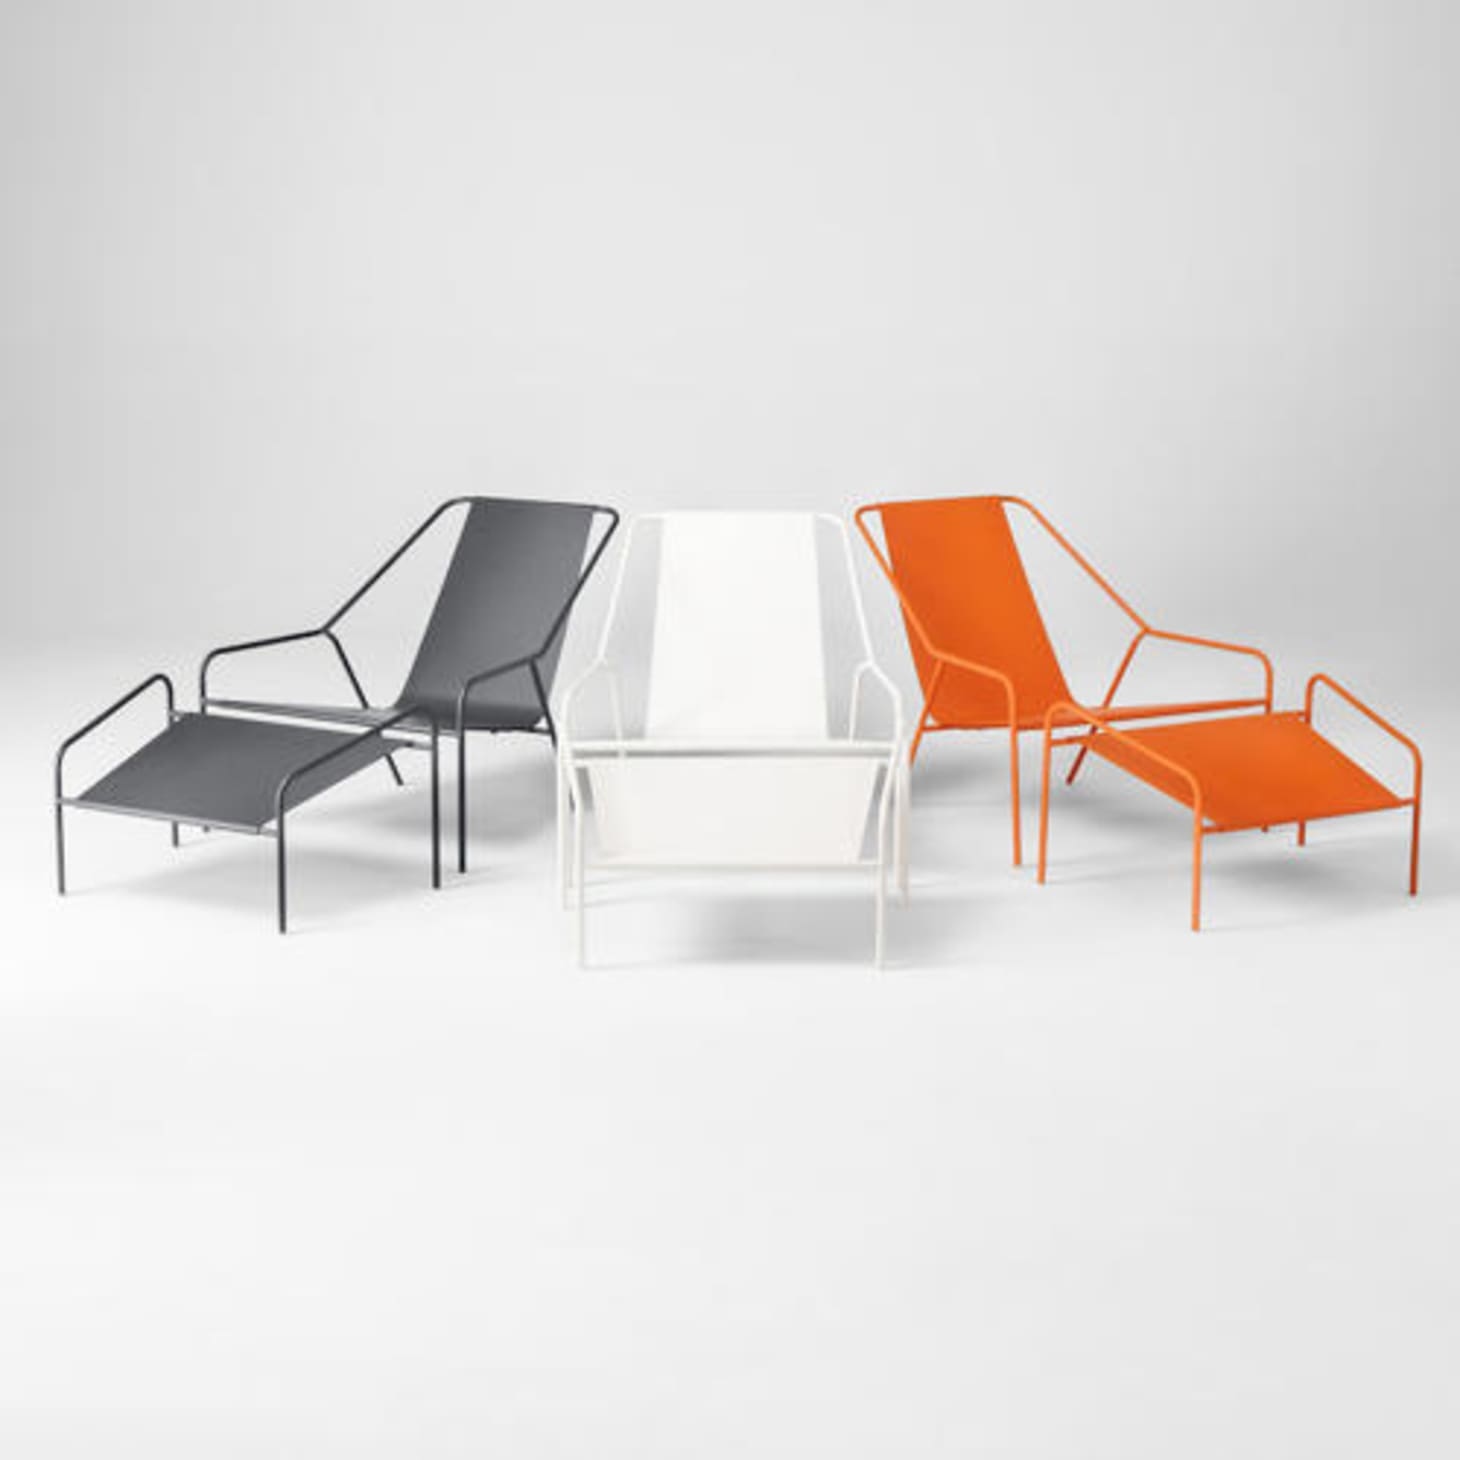 Target's Partners with Dwell Magazine for Home Collection